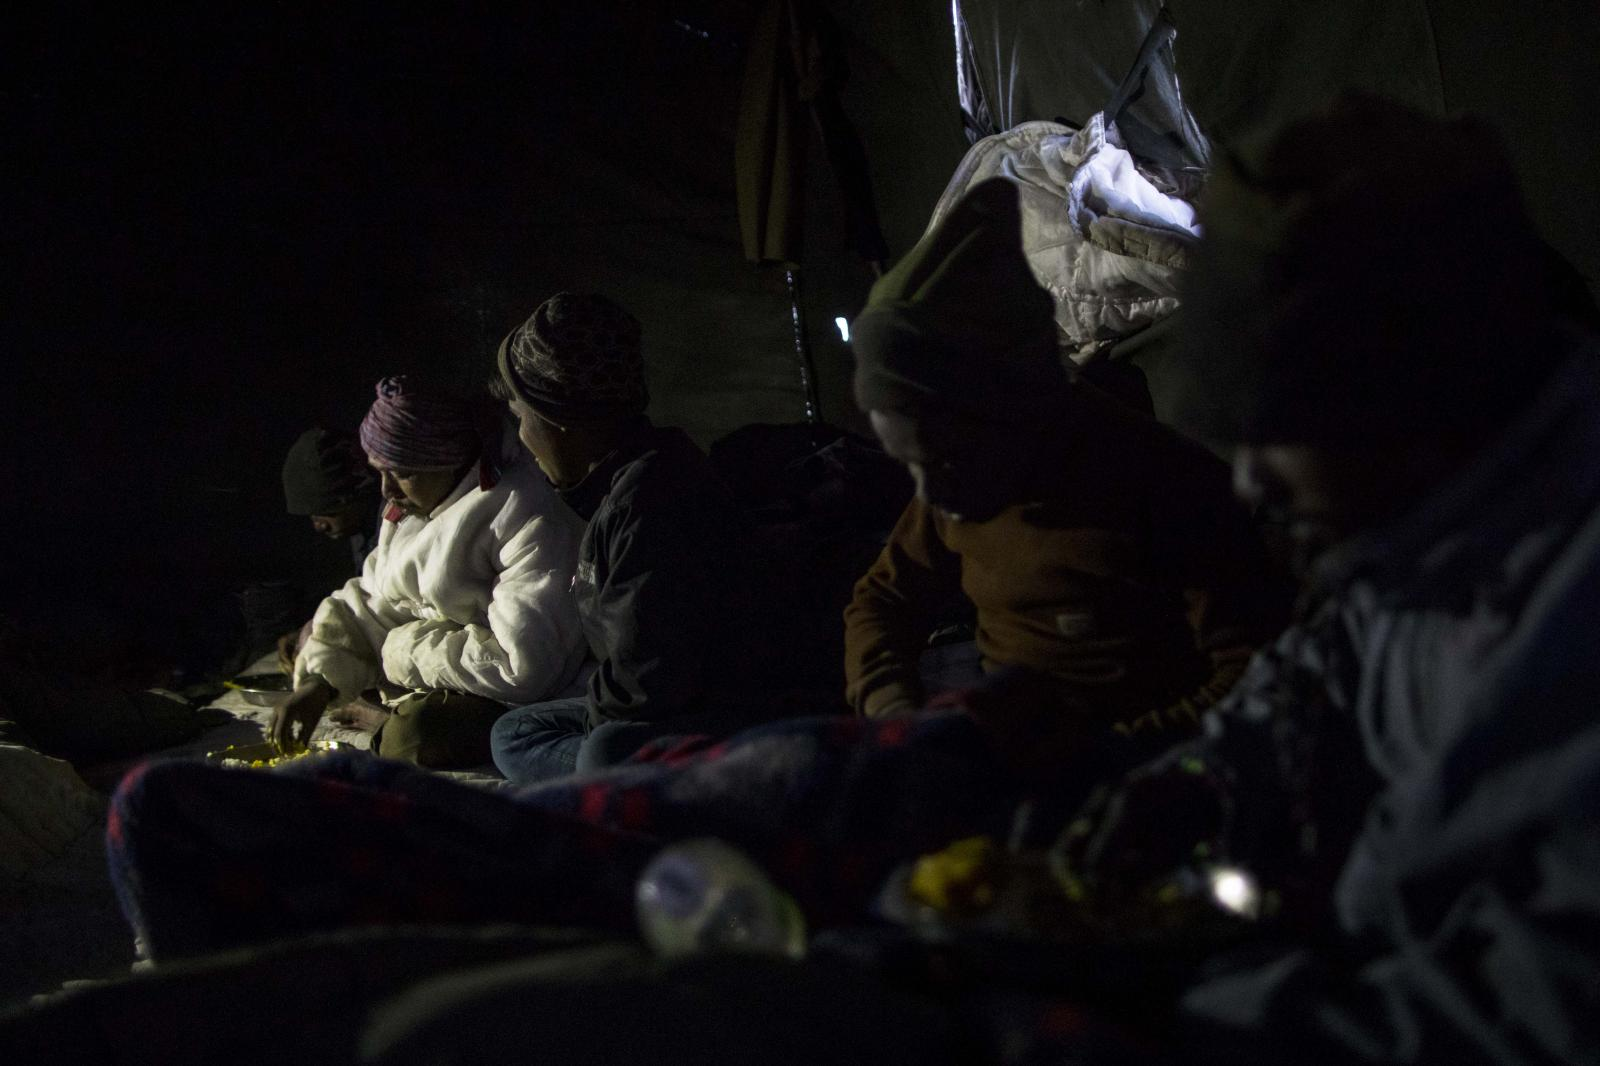 Road maintenance workers from India's low-lying eastern Jharkhand state eat dinner inside their tent at their campsite near Tangtse village in northern India's Ladakh region.